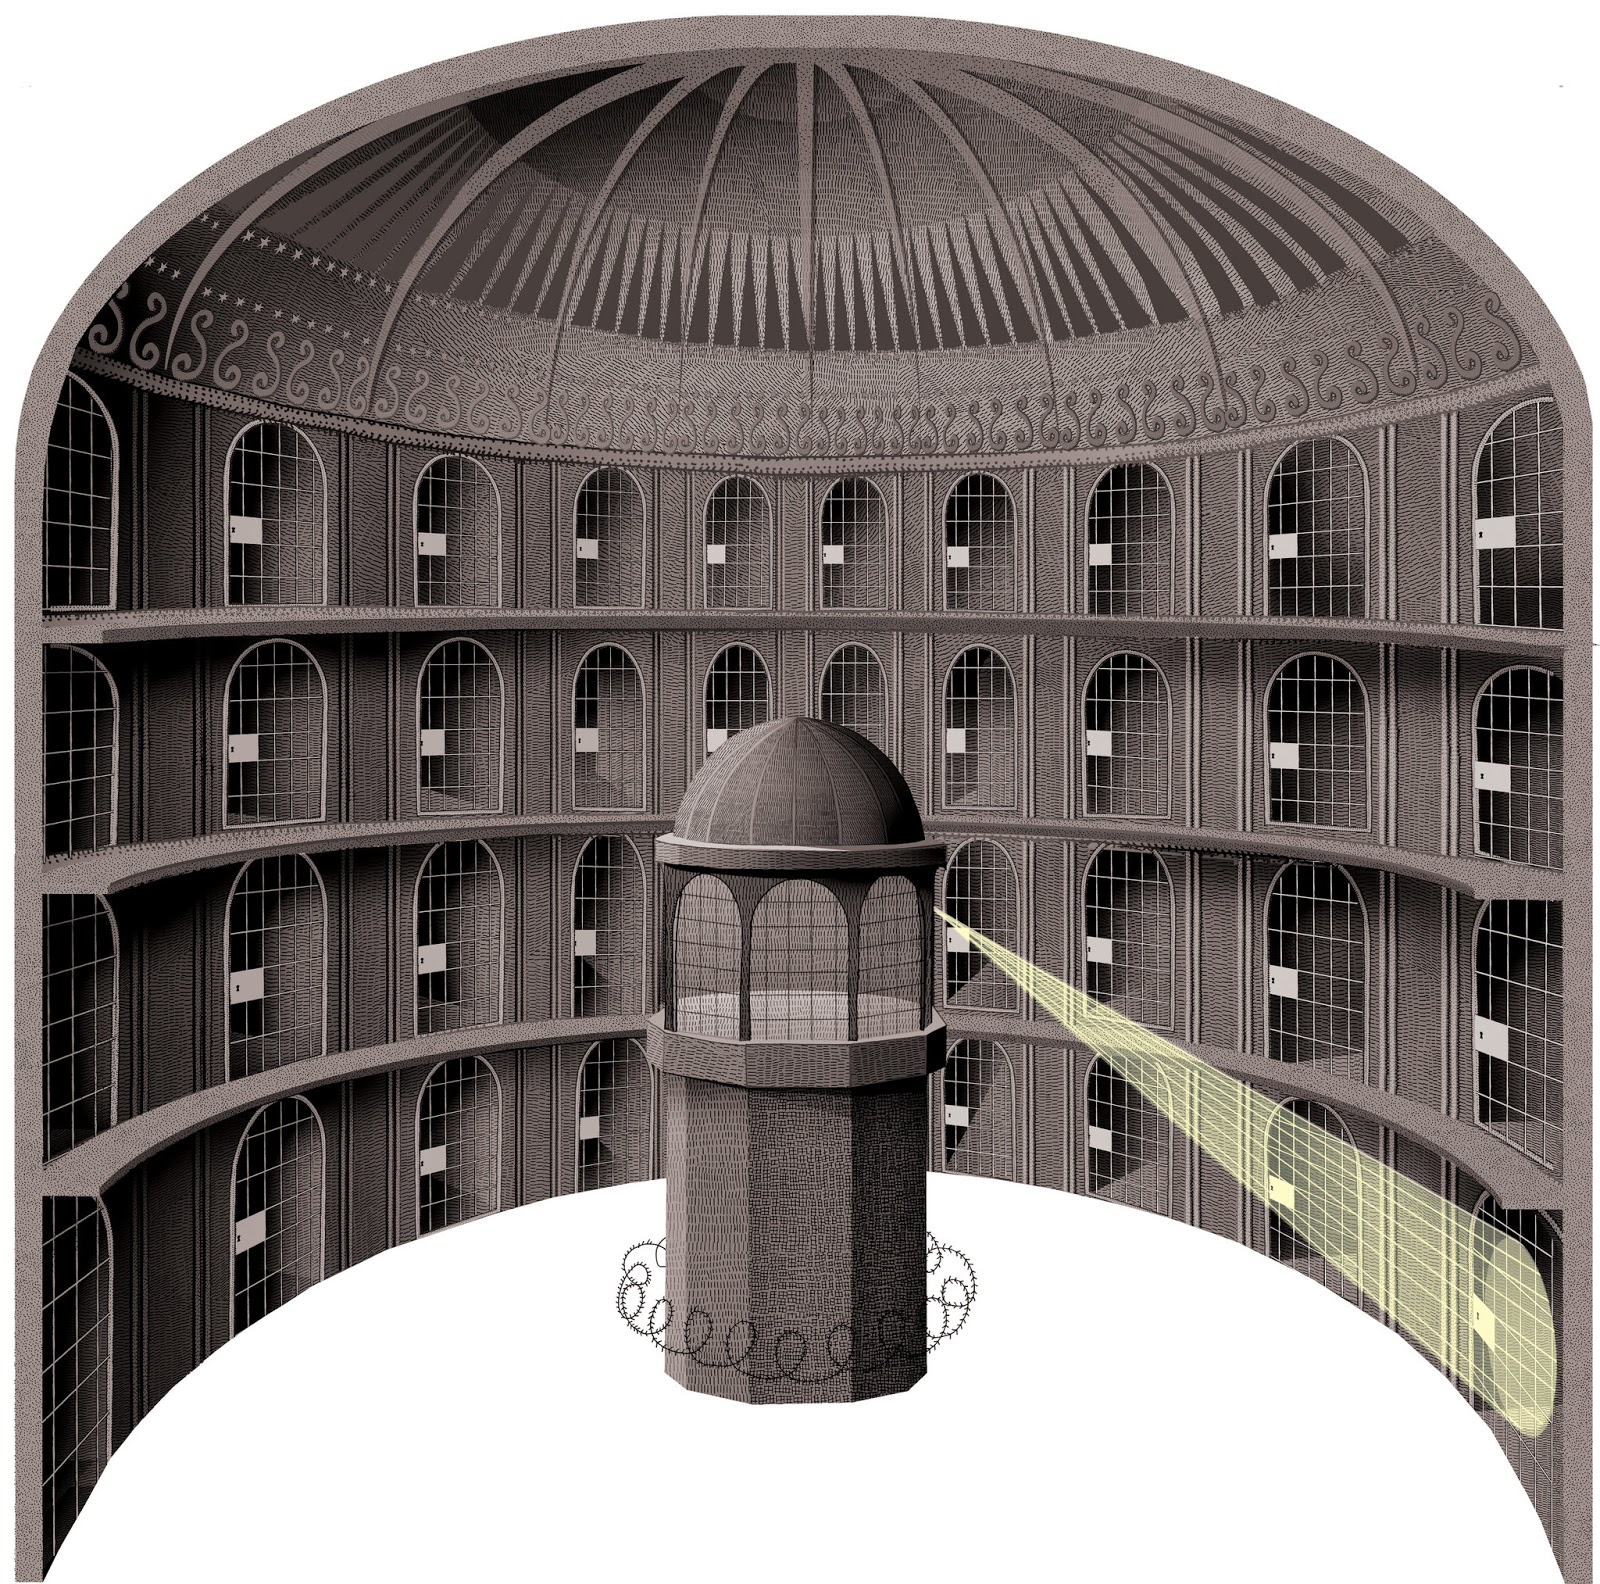 privacy fourth year this leads on to michel foucault s panopticism which is elaborating more on the disciplinary mechanisms in such a prison and discipline as an apparatus of